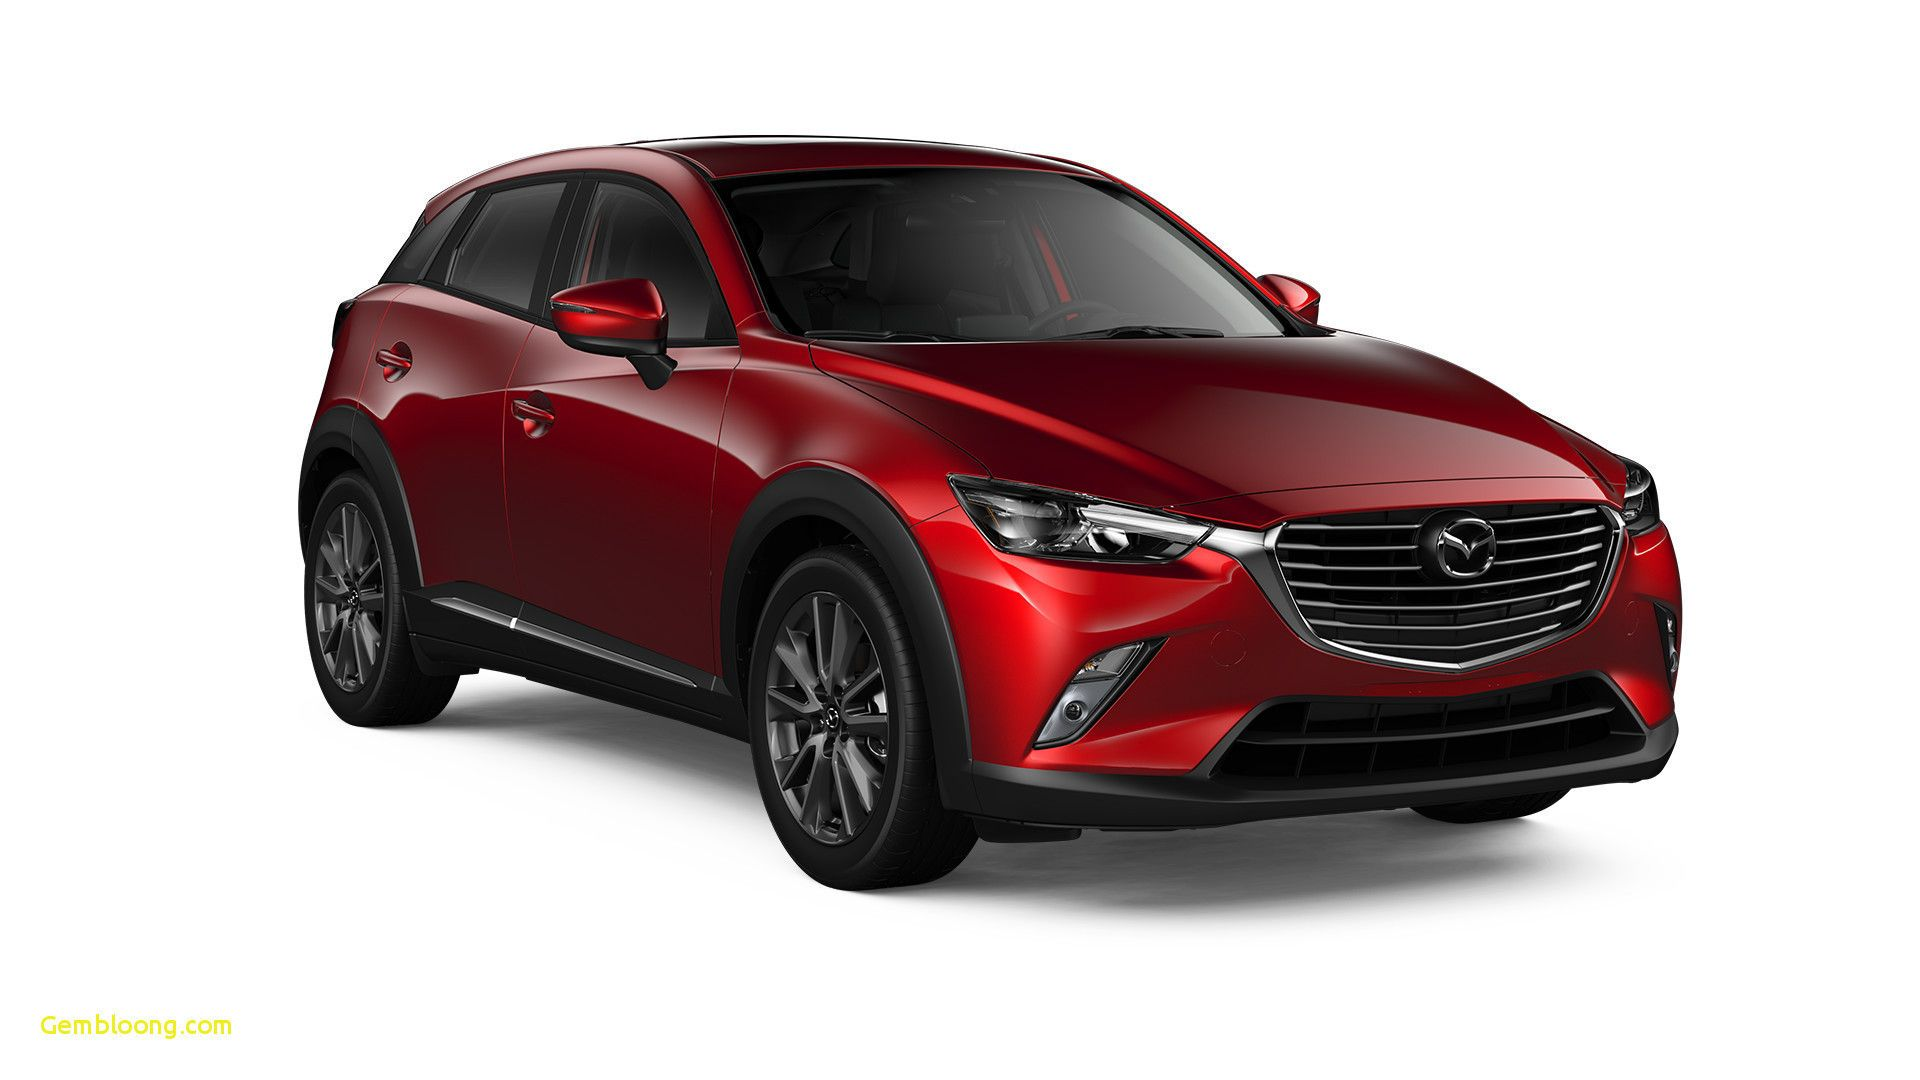 2020 Mazda Cx 5 2019 Mazda Cx 5 Luxury Cars Hot 2019 Mazda